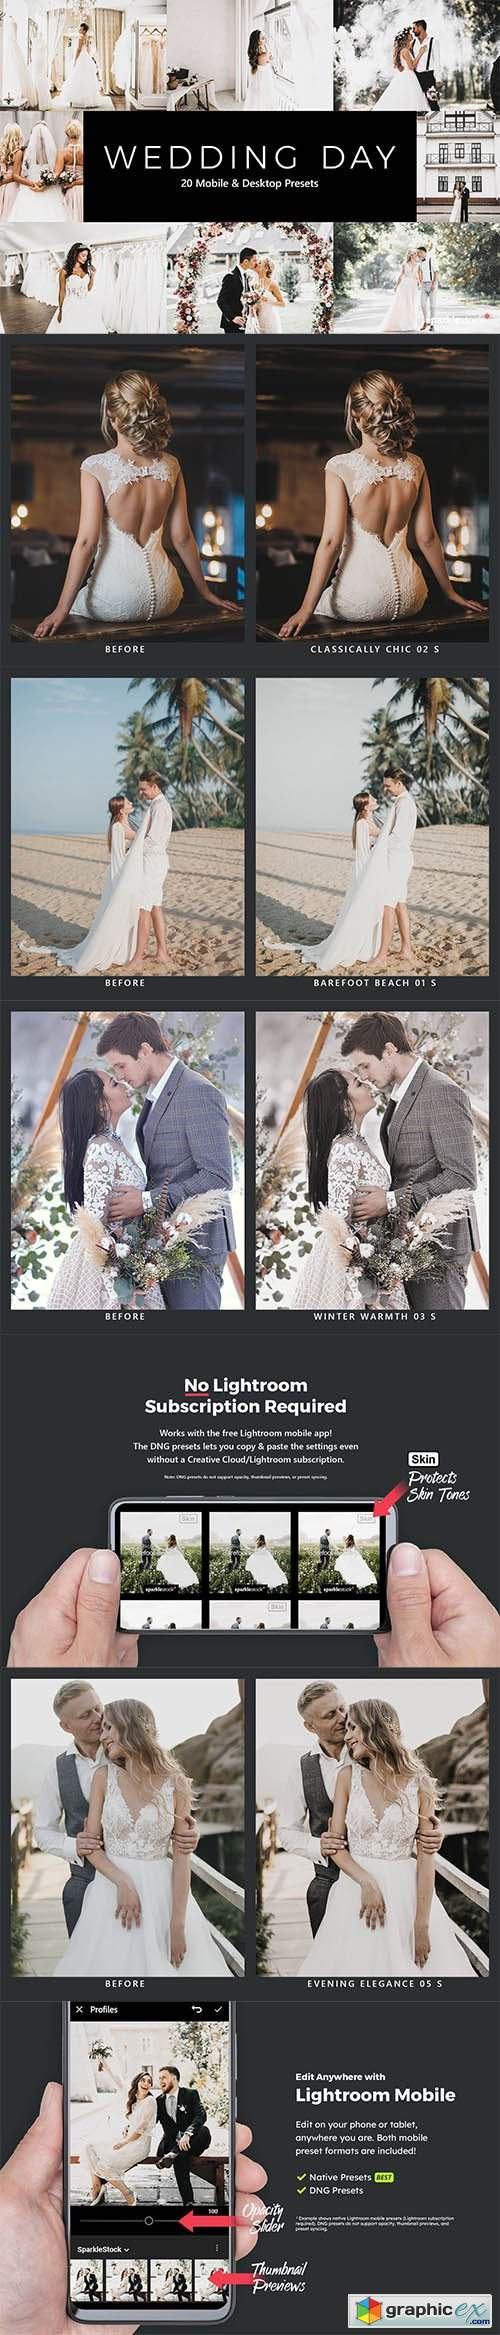 20 Wedding Day Lightroom Presets & LUTs